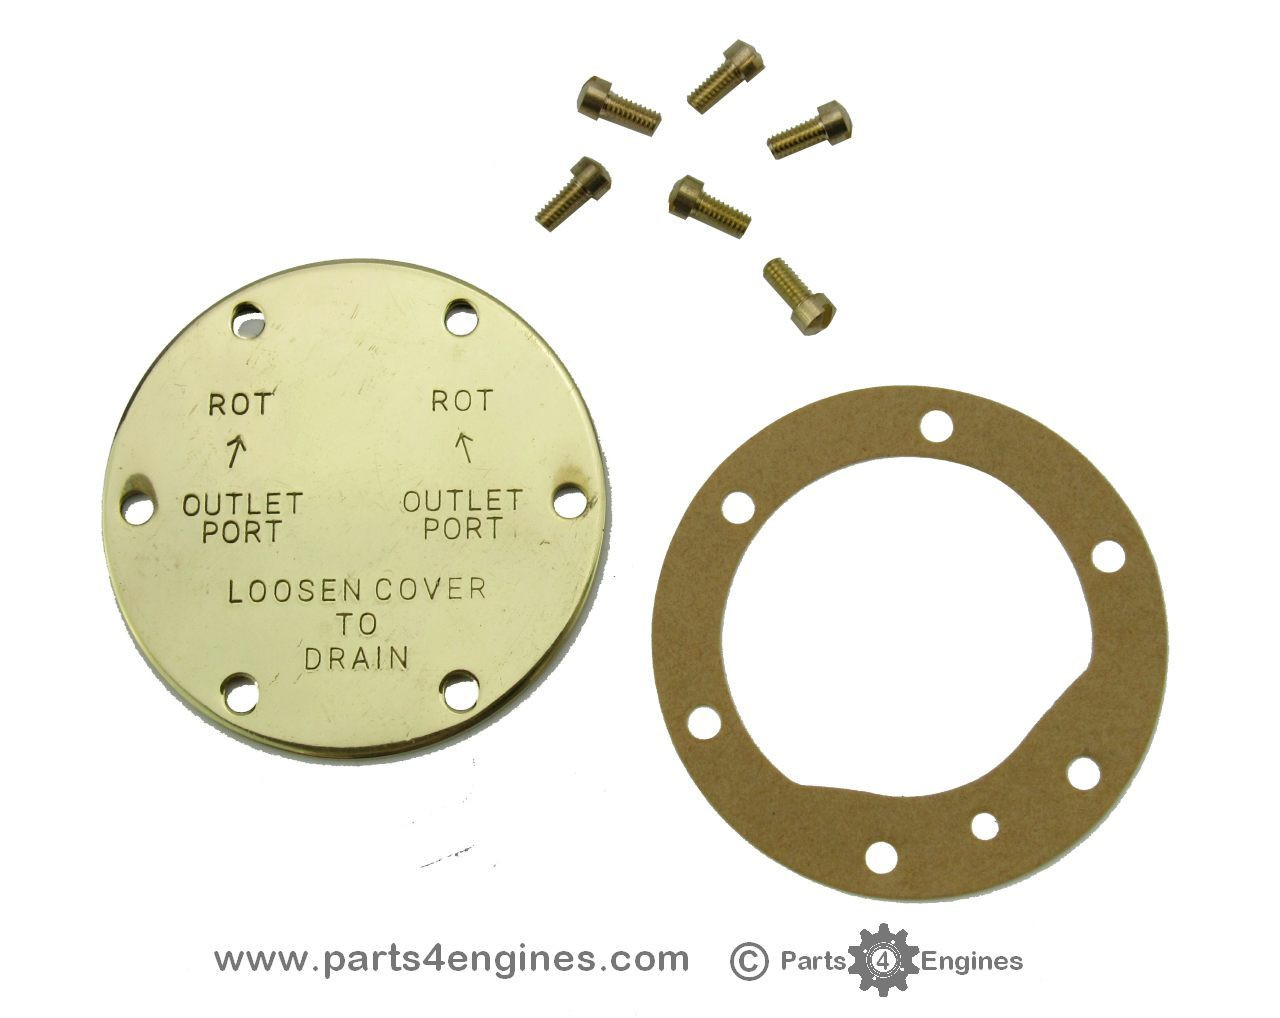 EARLY Volvo Penta MD2020 raw water pump End Cover kit - parts4engines.com